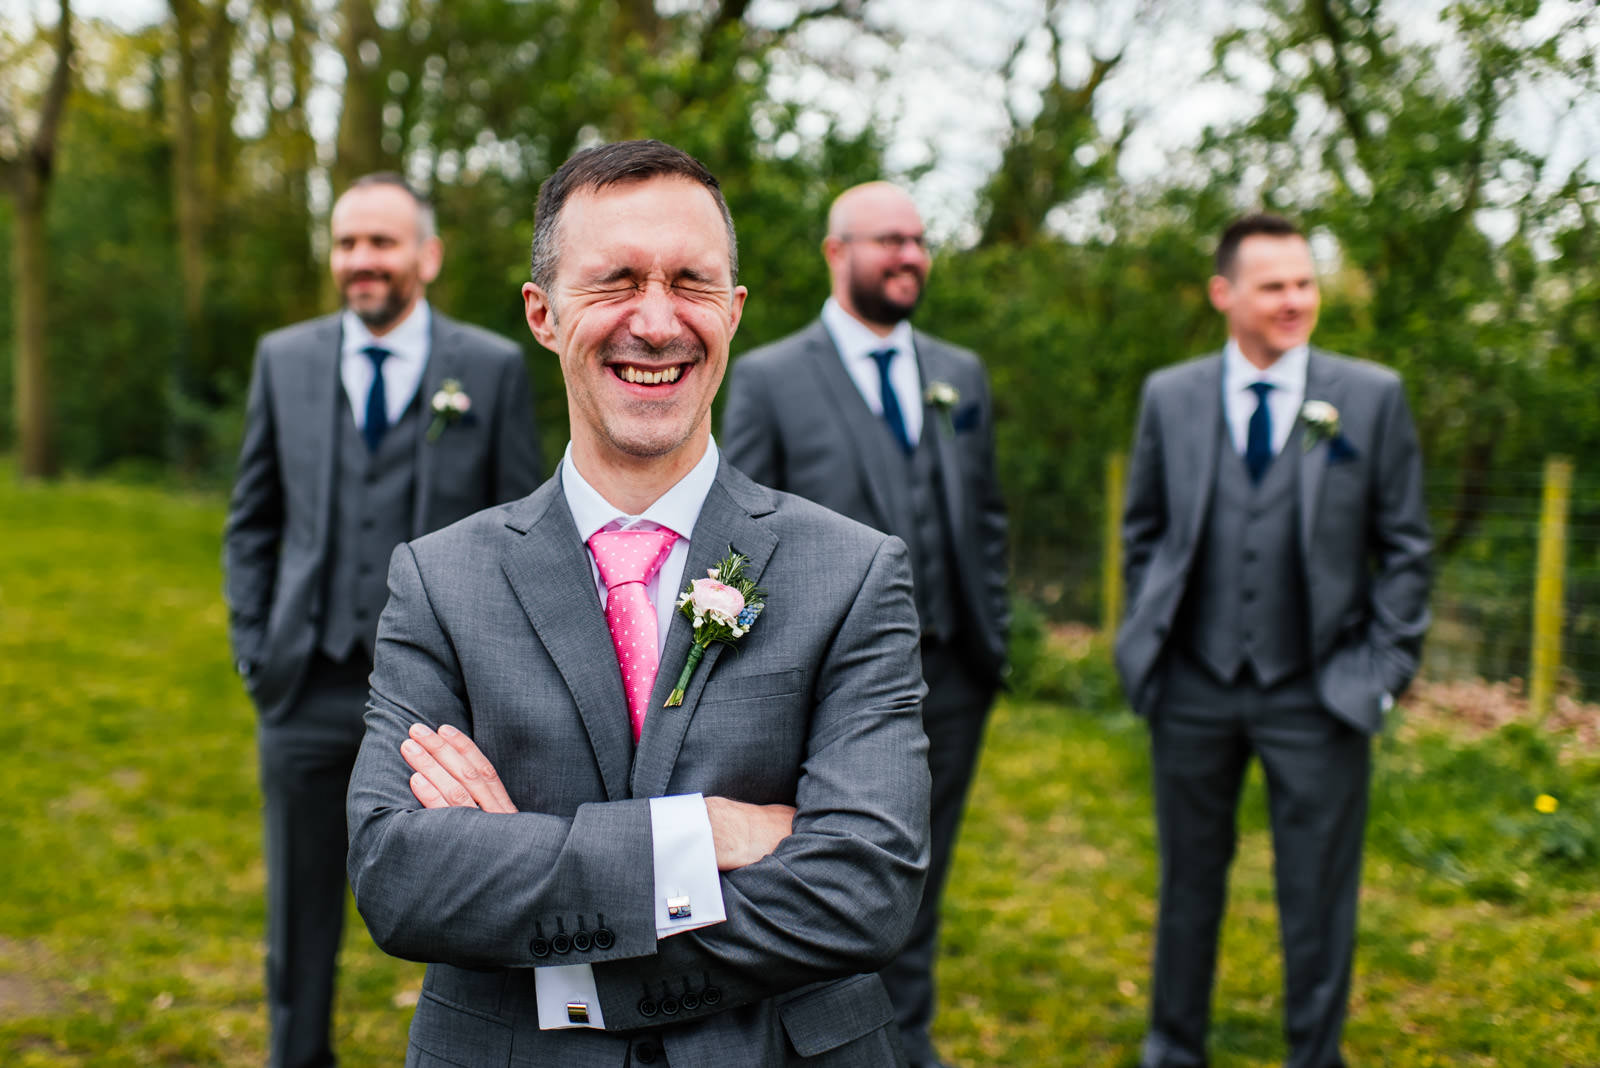 Groomsman Photos